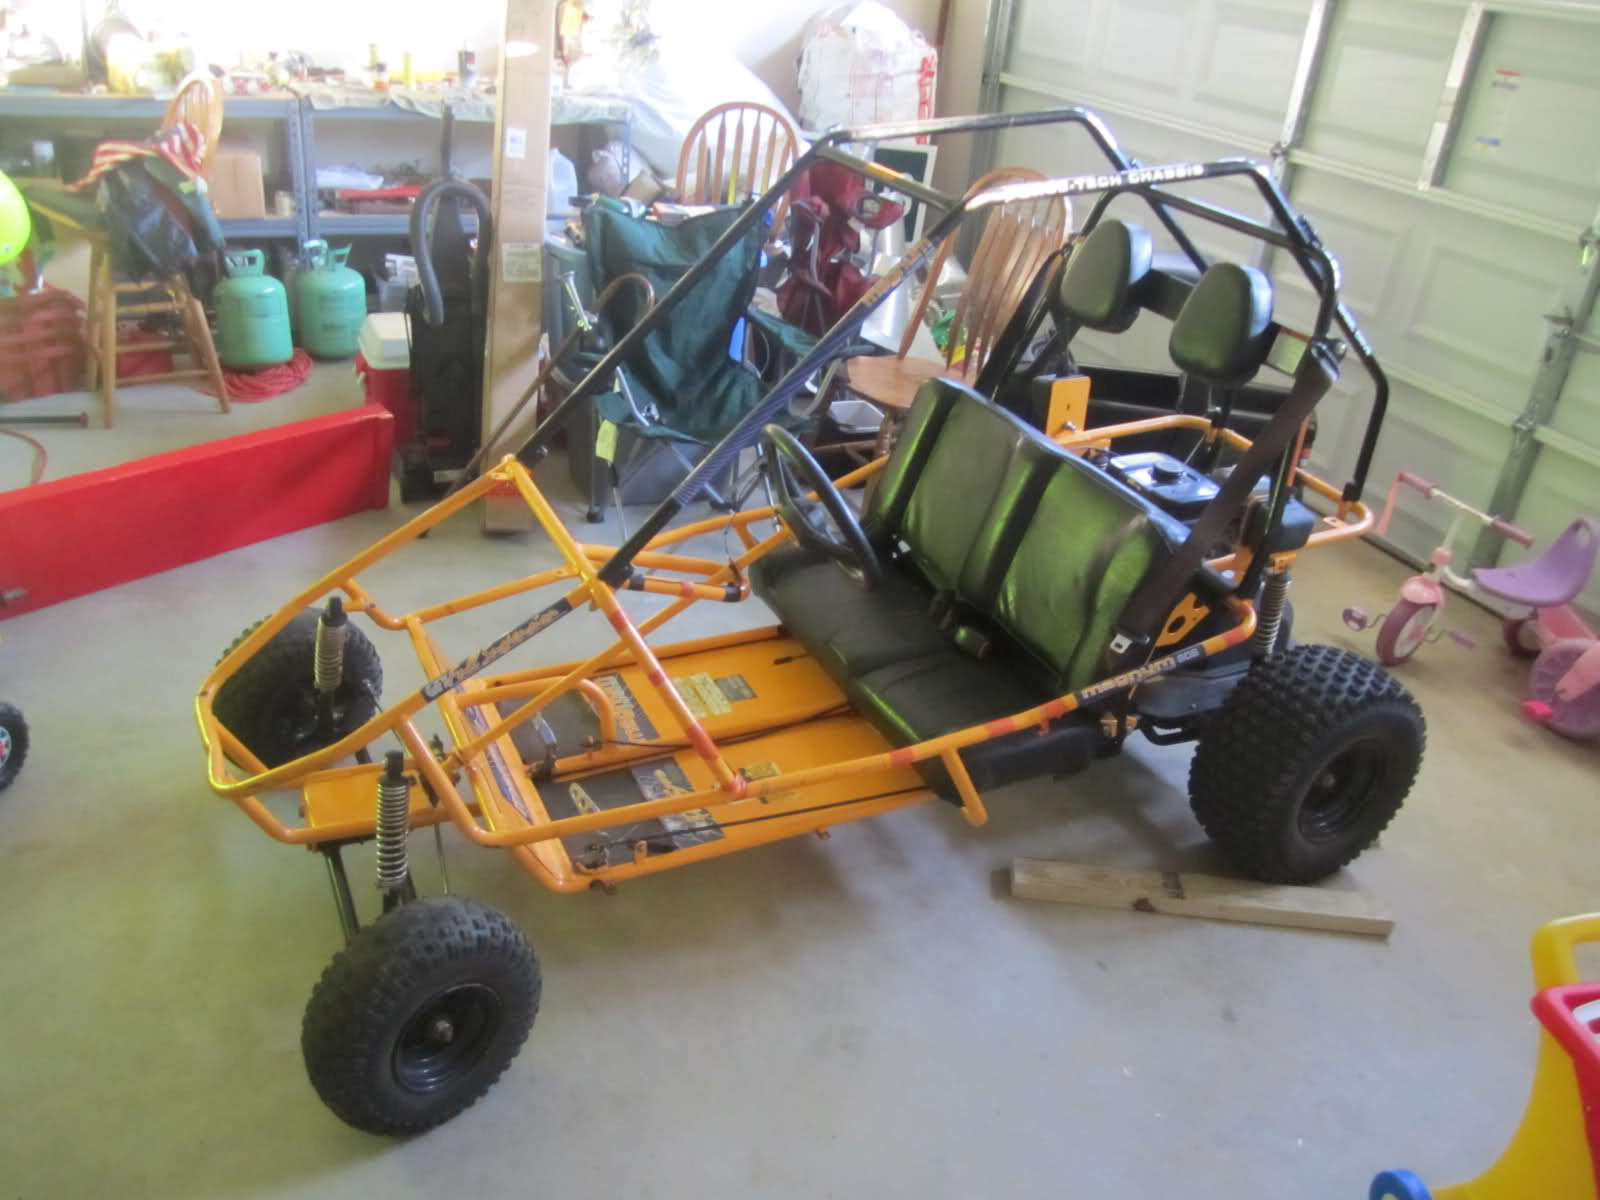 Manco 169cc go cart $450 obo***PICS ADDED*** | The Outdoors Trader